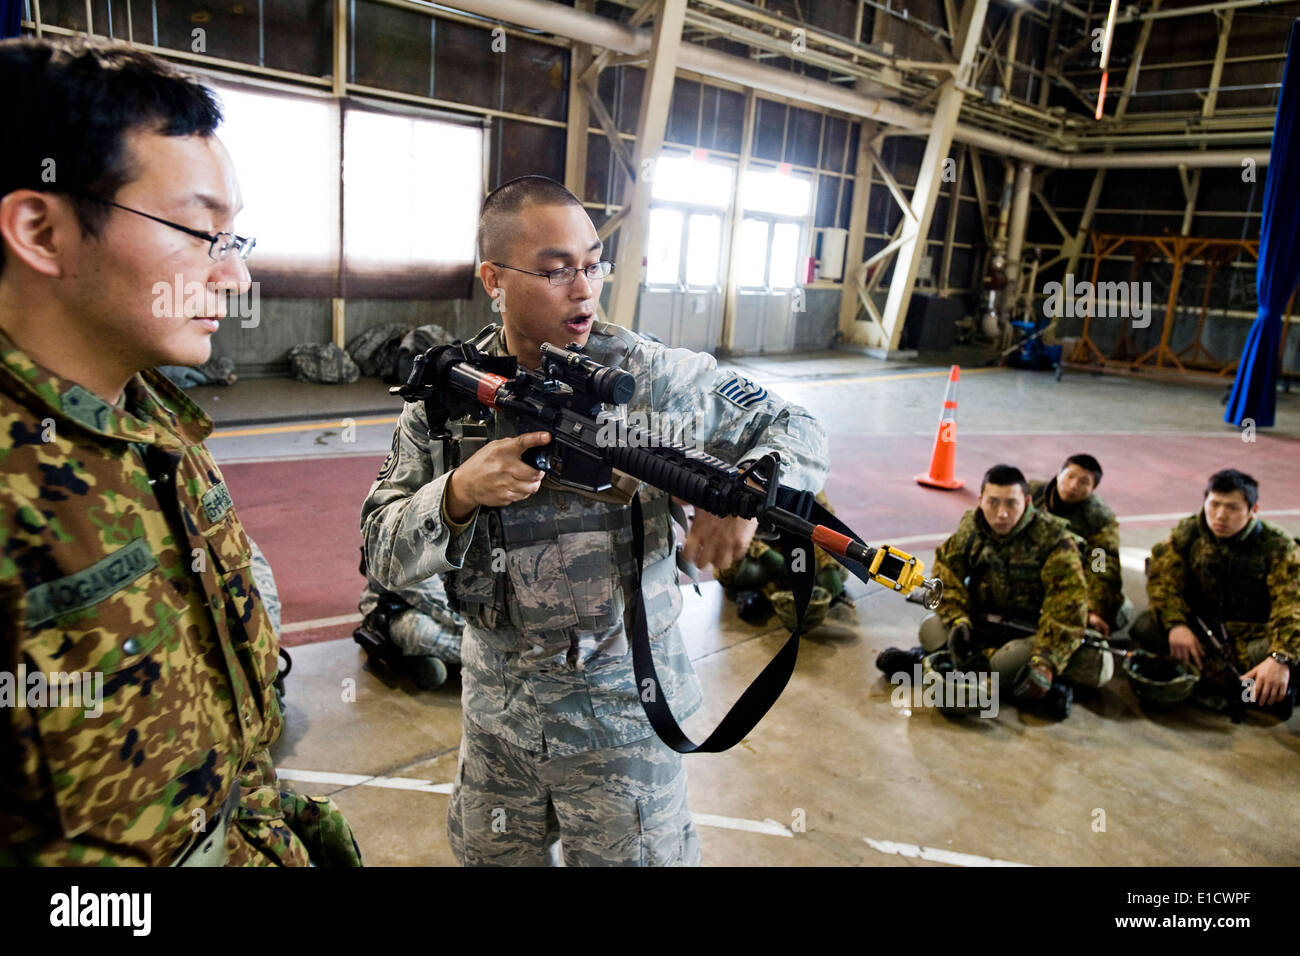 u s air force tech sgt stock photos u s air force tech sgt stock u s air force tech sgt ronnie aldana a unit trainer assigned to the